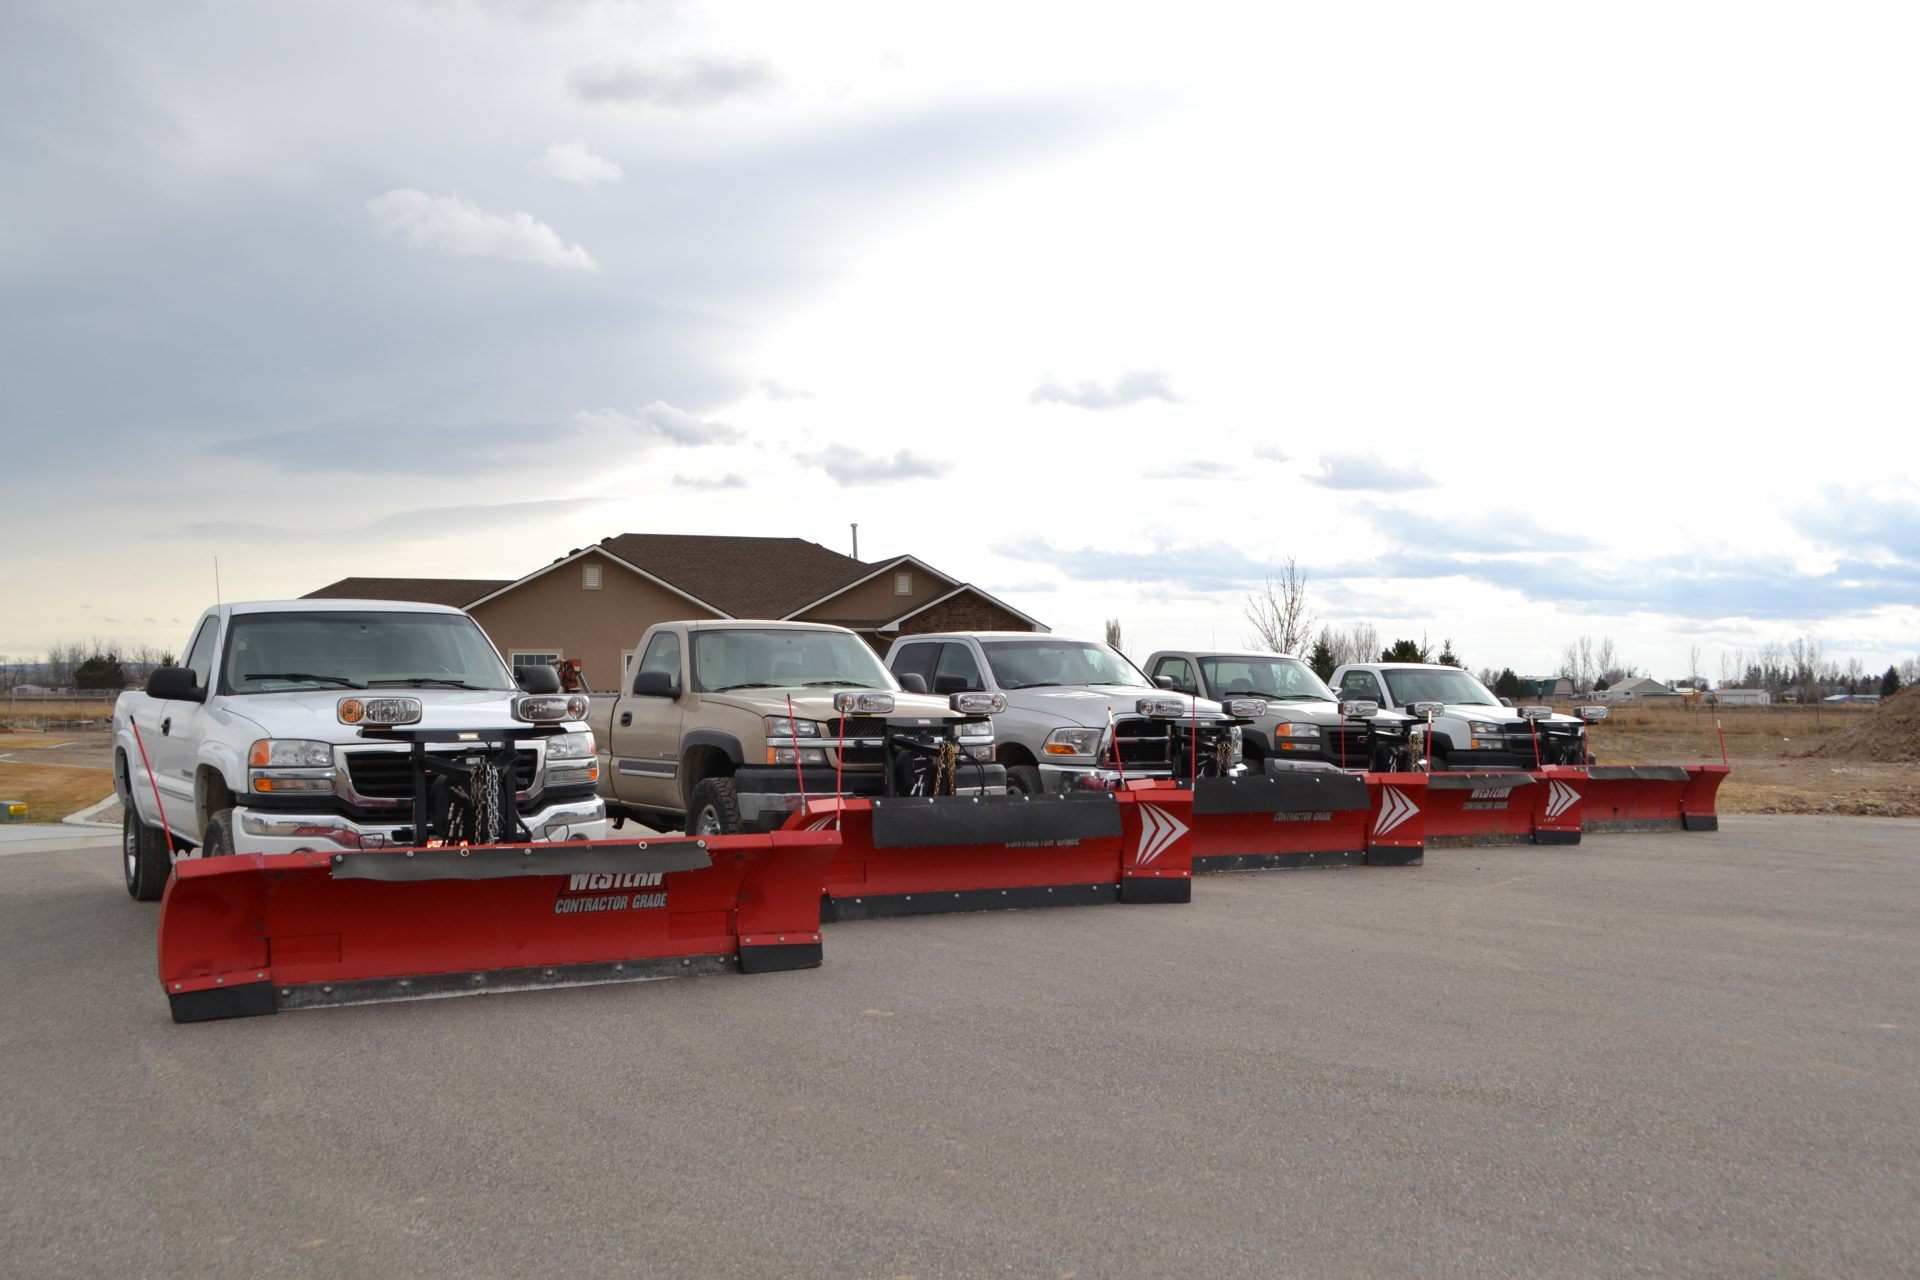 Smitty's Lawn & Snow, Idaho Falls Lanscaping and Snow Removal Services